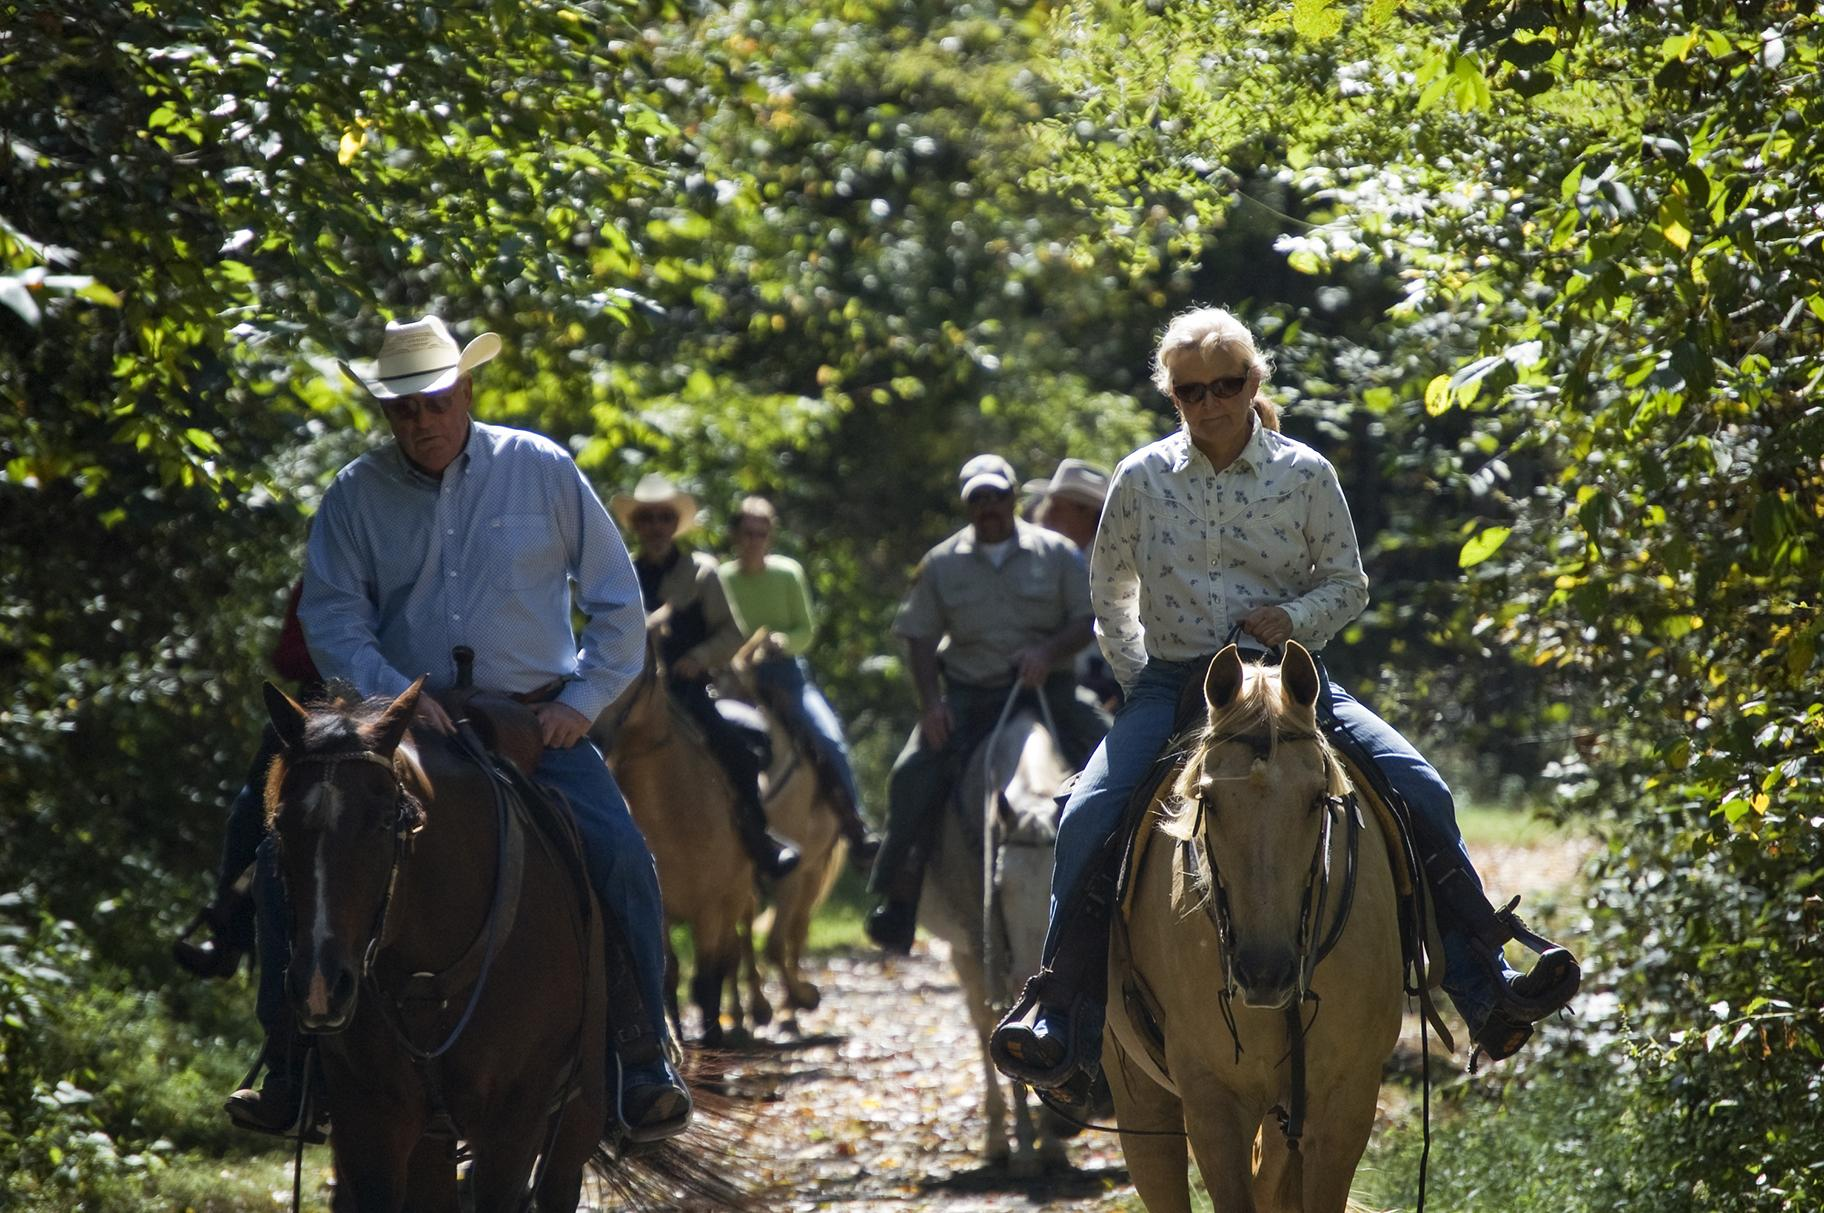 Horseback riding at New River Trail State Park in Virginia (Virginia State Parks / Wikimedia Commons)